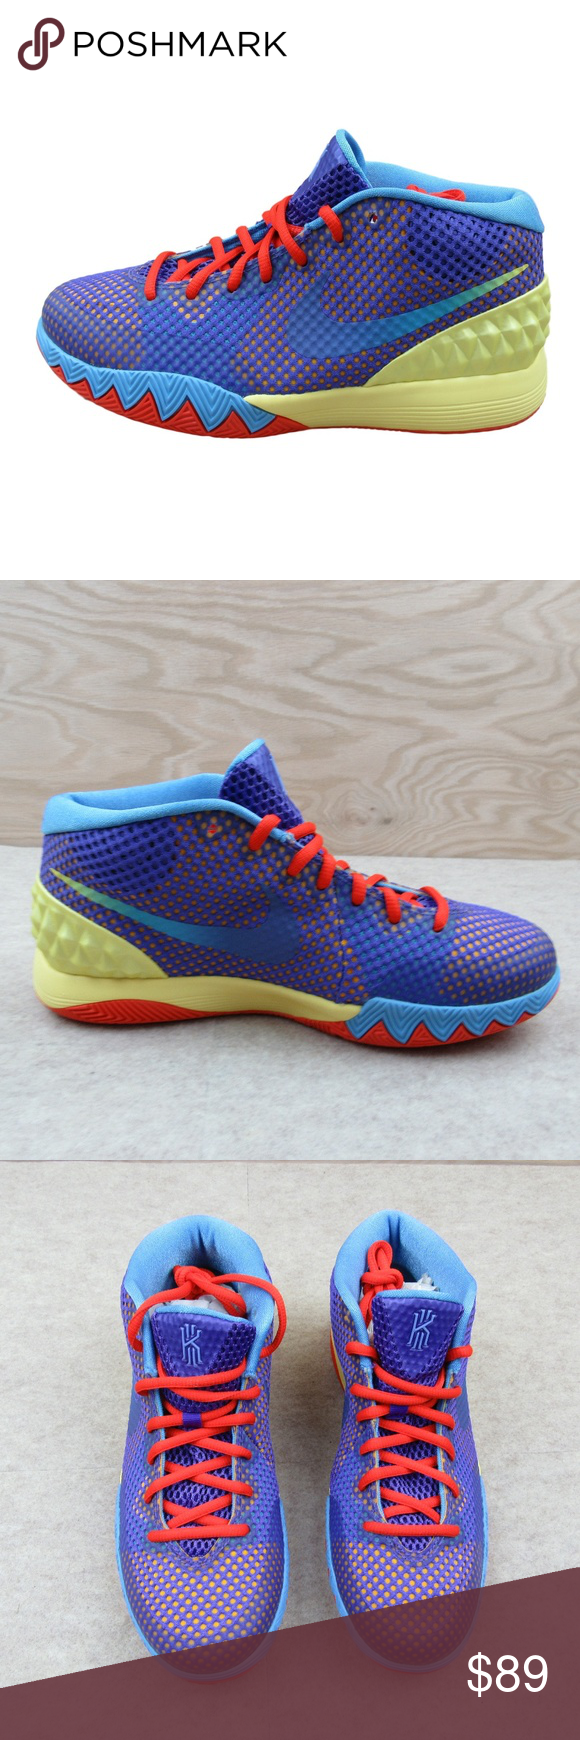 ca766154529f Nike Kyrie 1 GS Size 6.5Y Basketball Shoes NEW Nike Kyrie 1 GS Lemon Frost